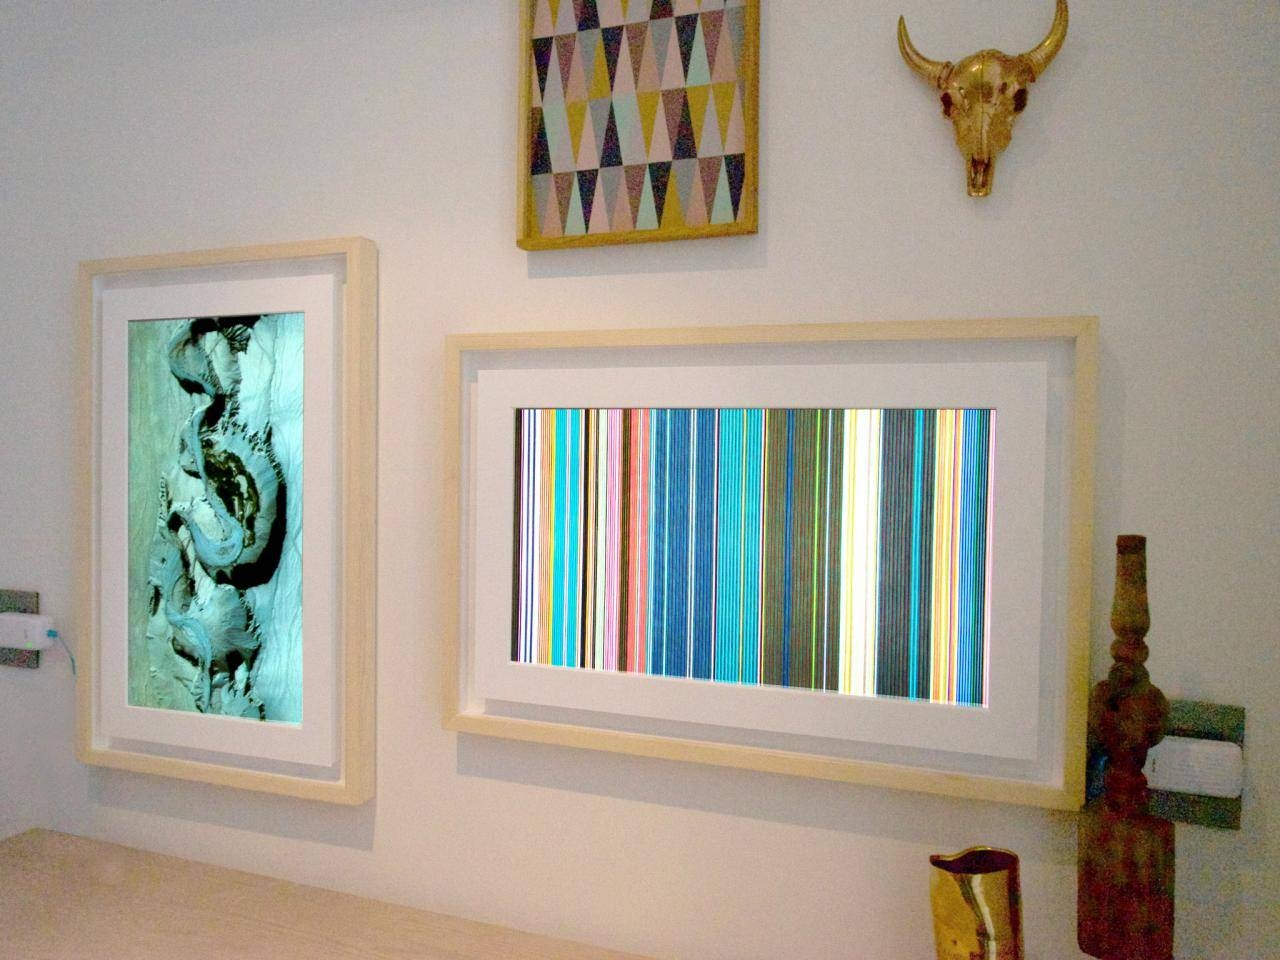 Digital Picture Frames Have Grown Up Into Wall Art | Hgtv Smart With Newest Wall Art Frames (View 2 of 20)